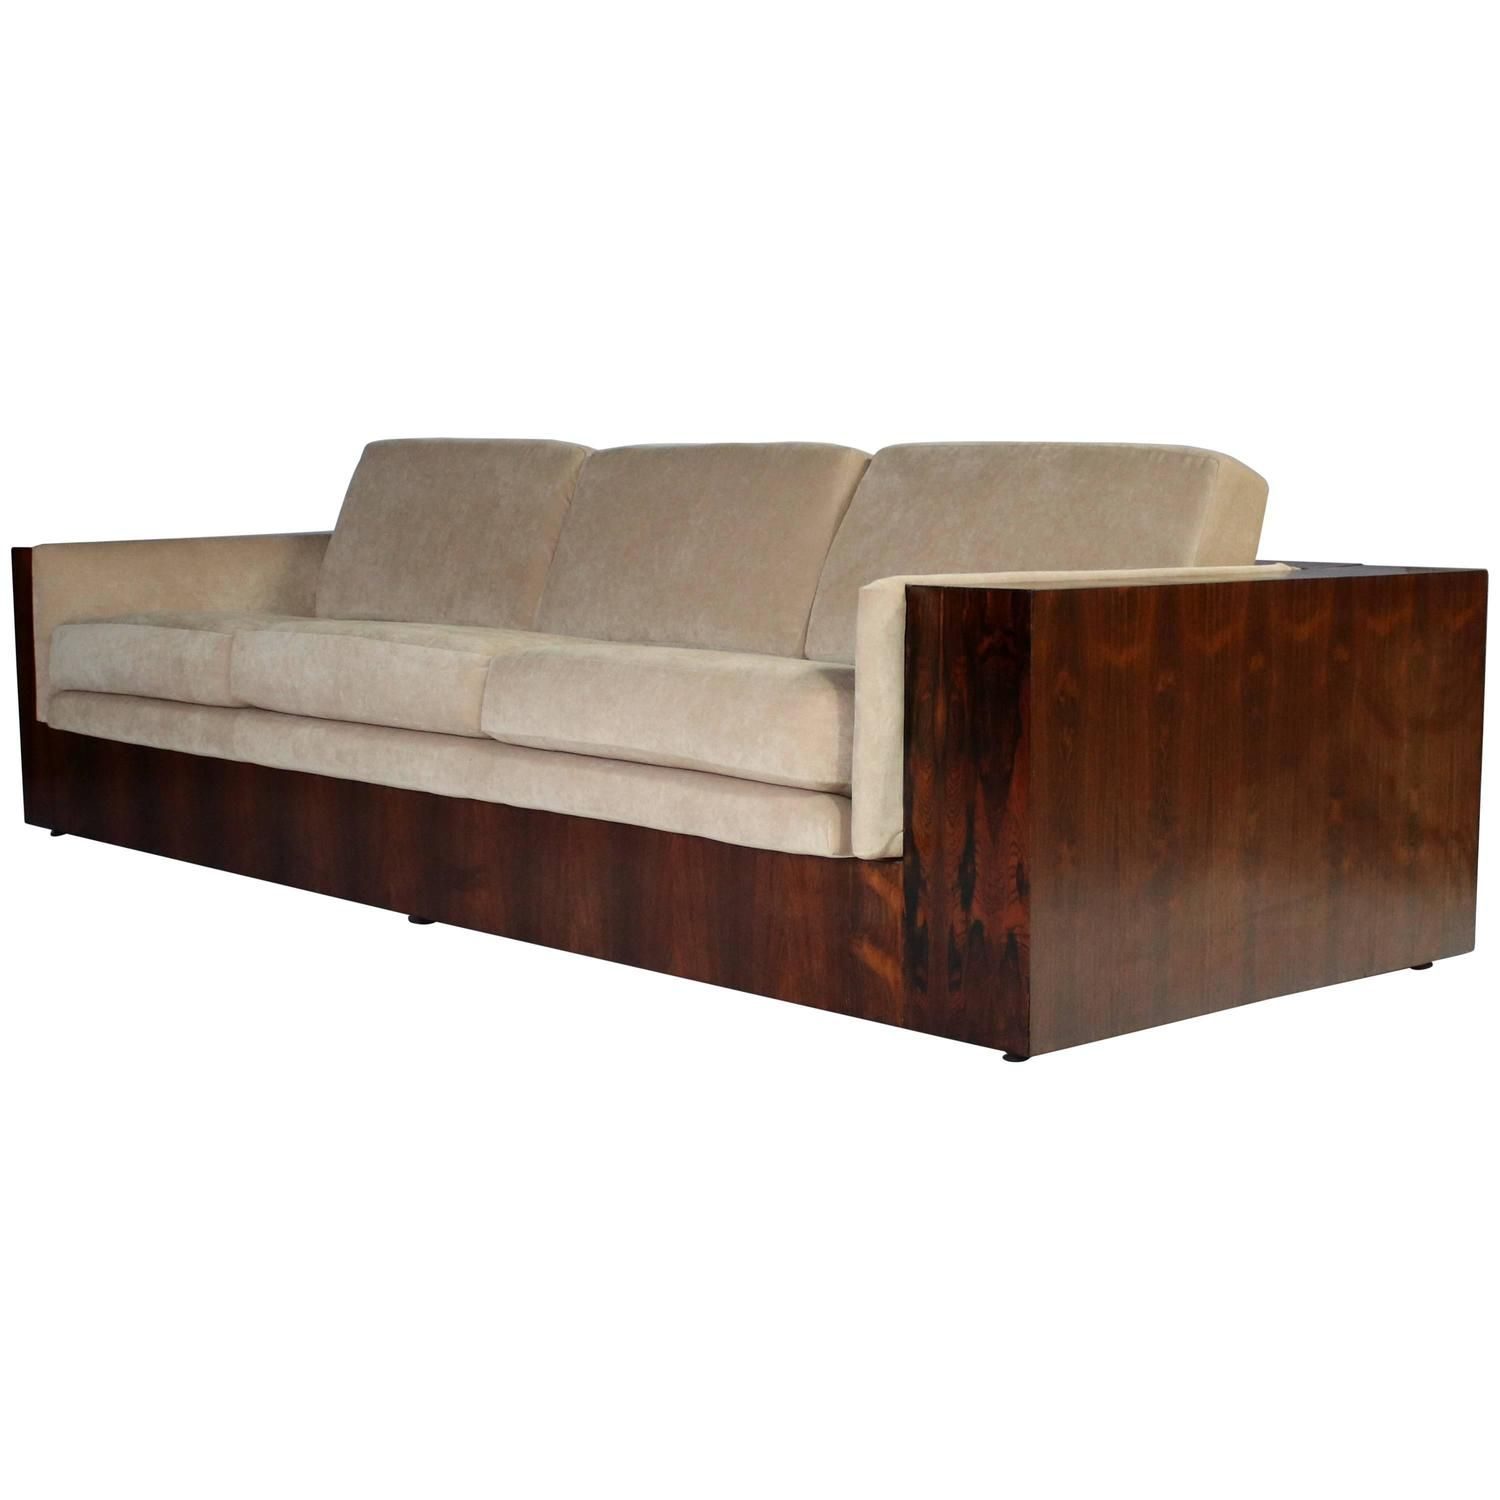 Milo Baughman Rosewood Case Sofa For Thayer Coggin Sofa Vintage